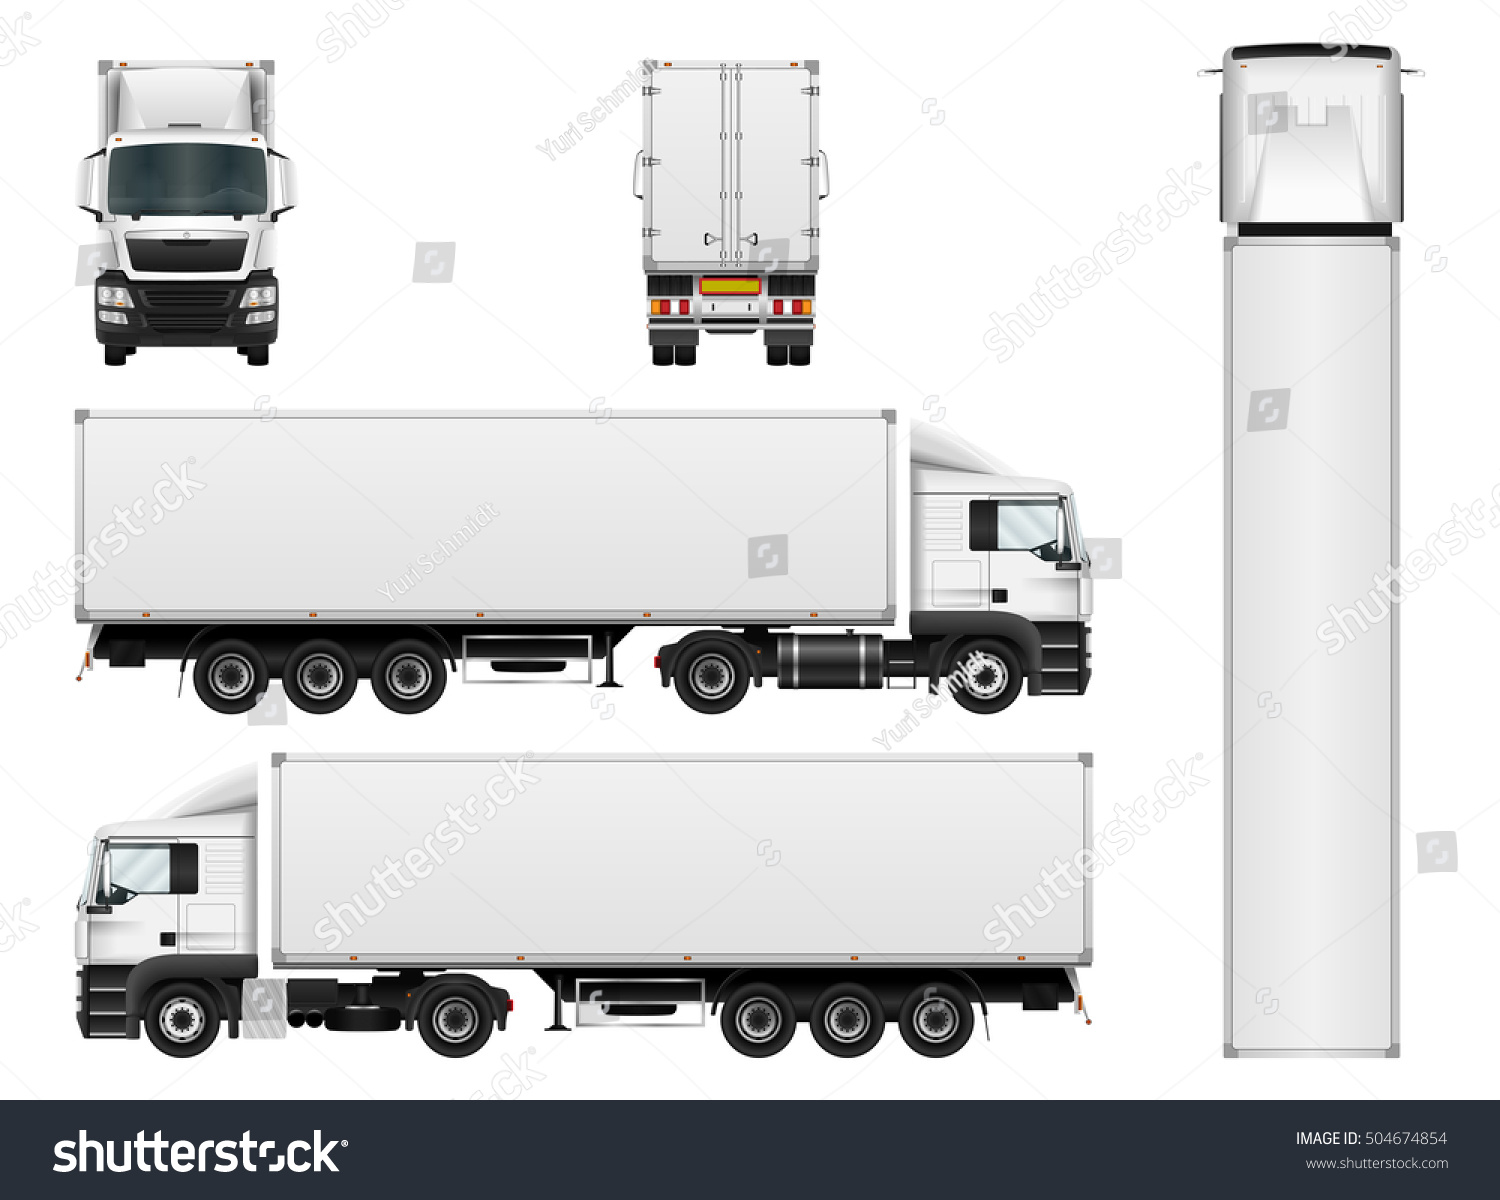 Similiar Trailer Graphics Template Keywords